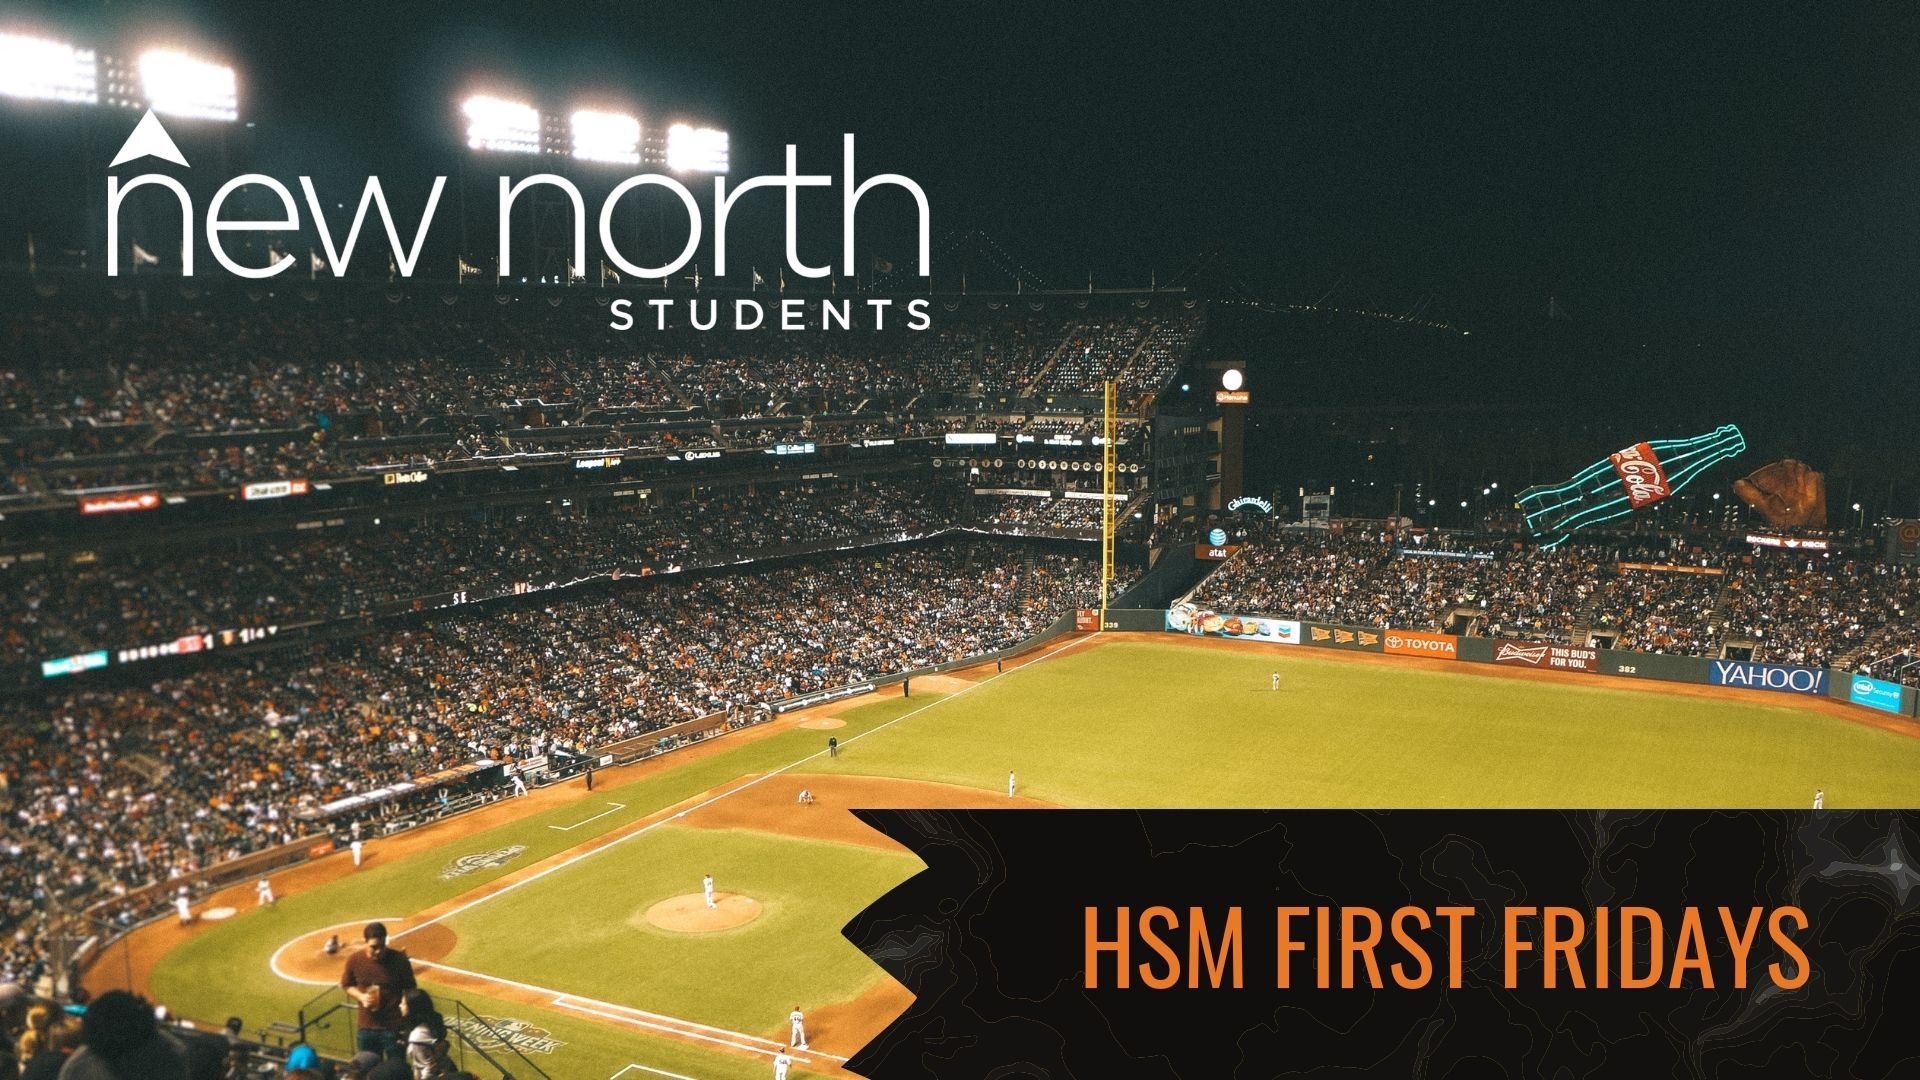 HSM First Friday at Oracle Park